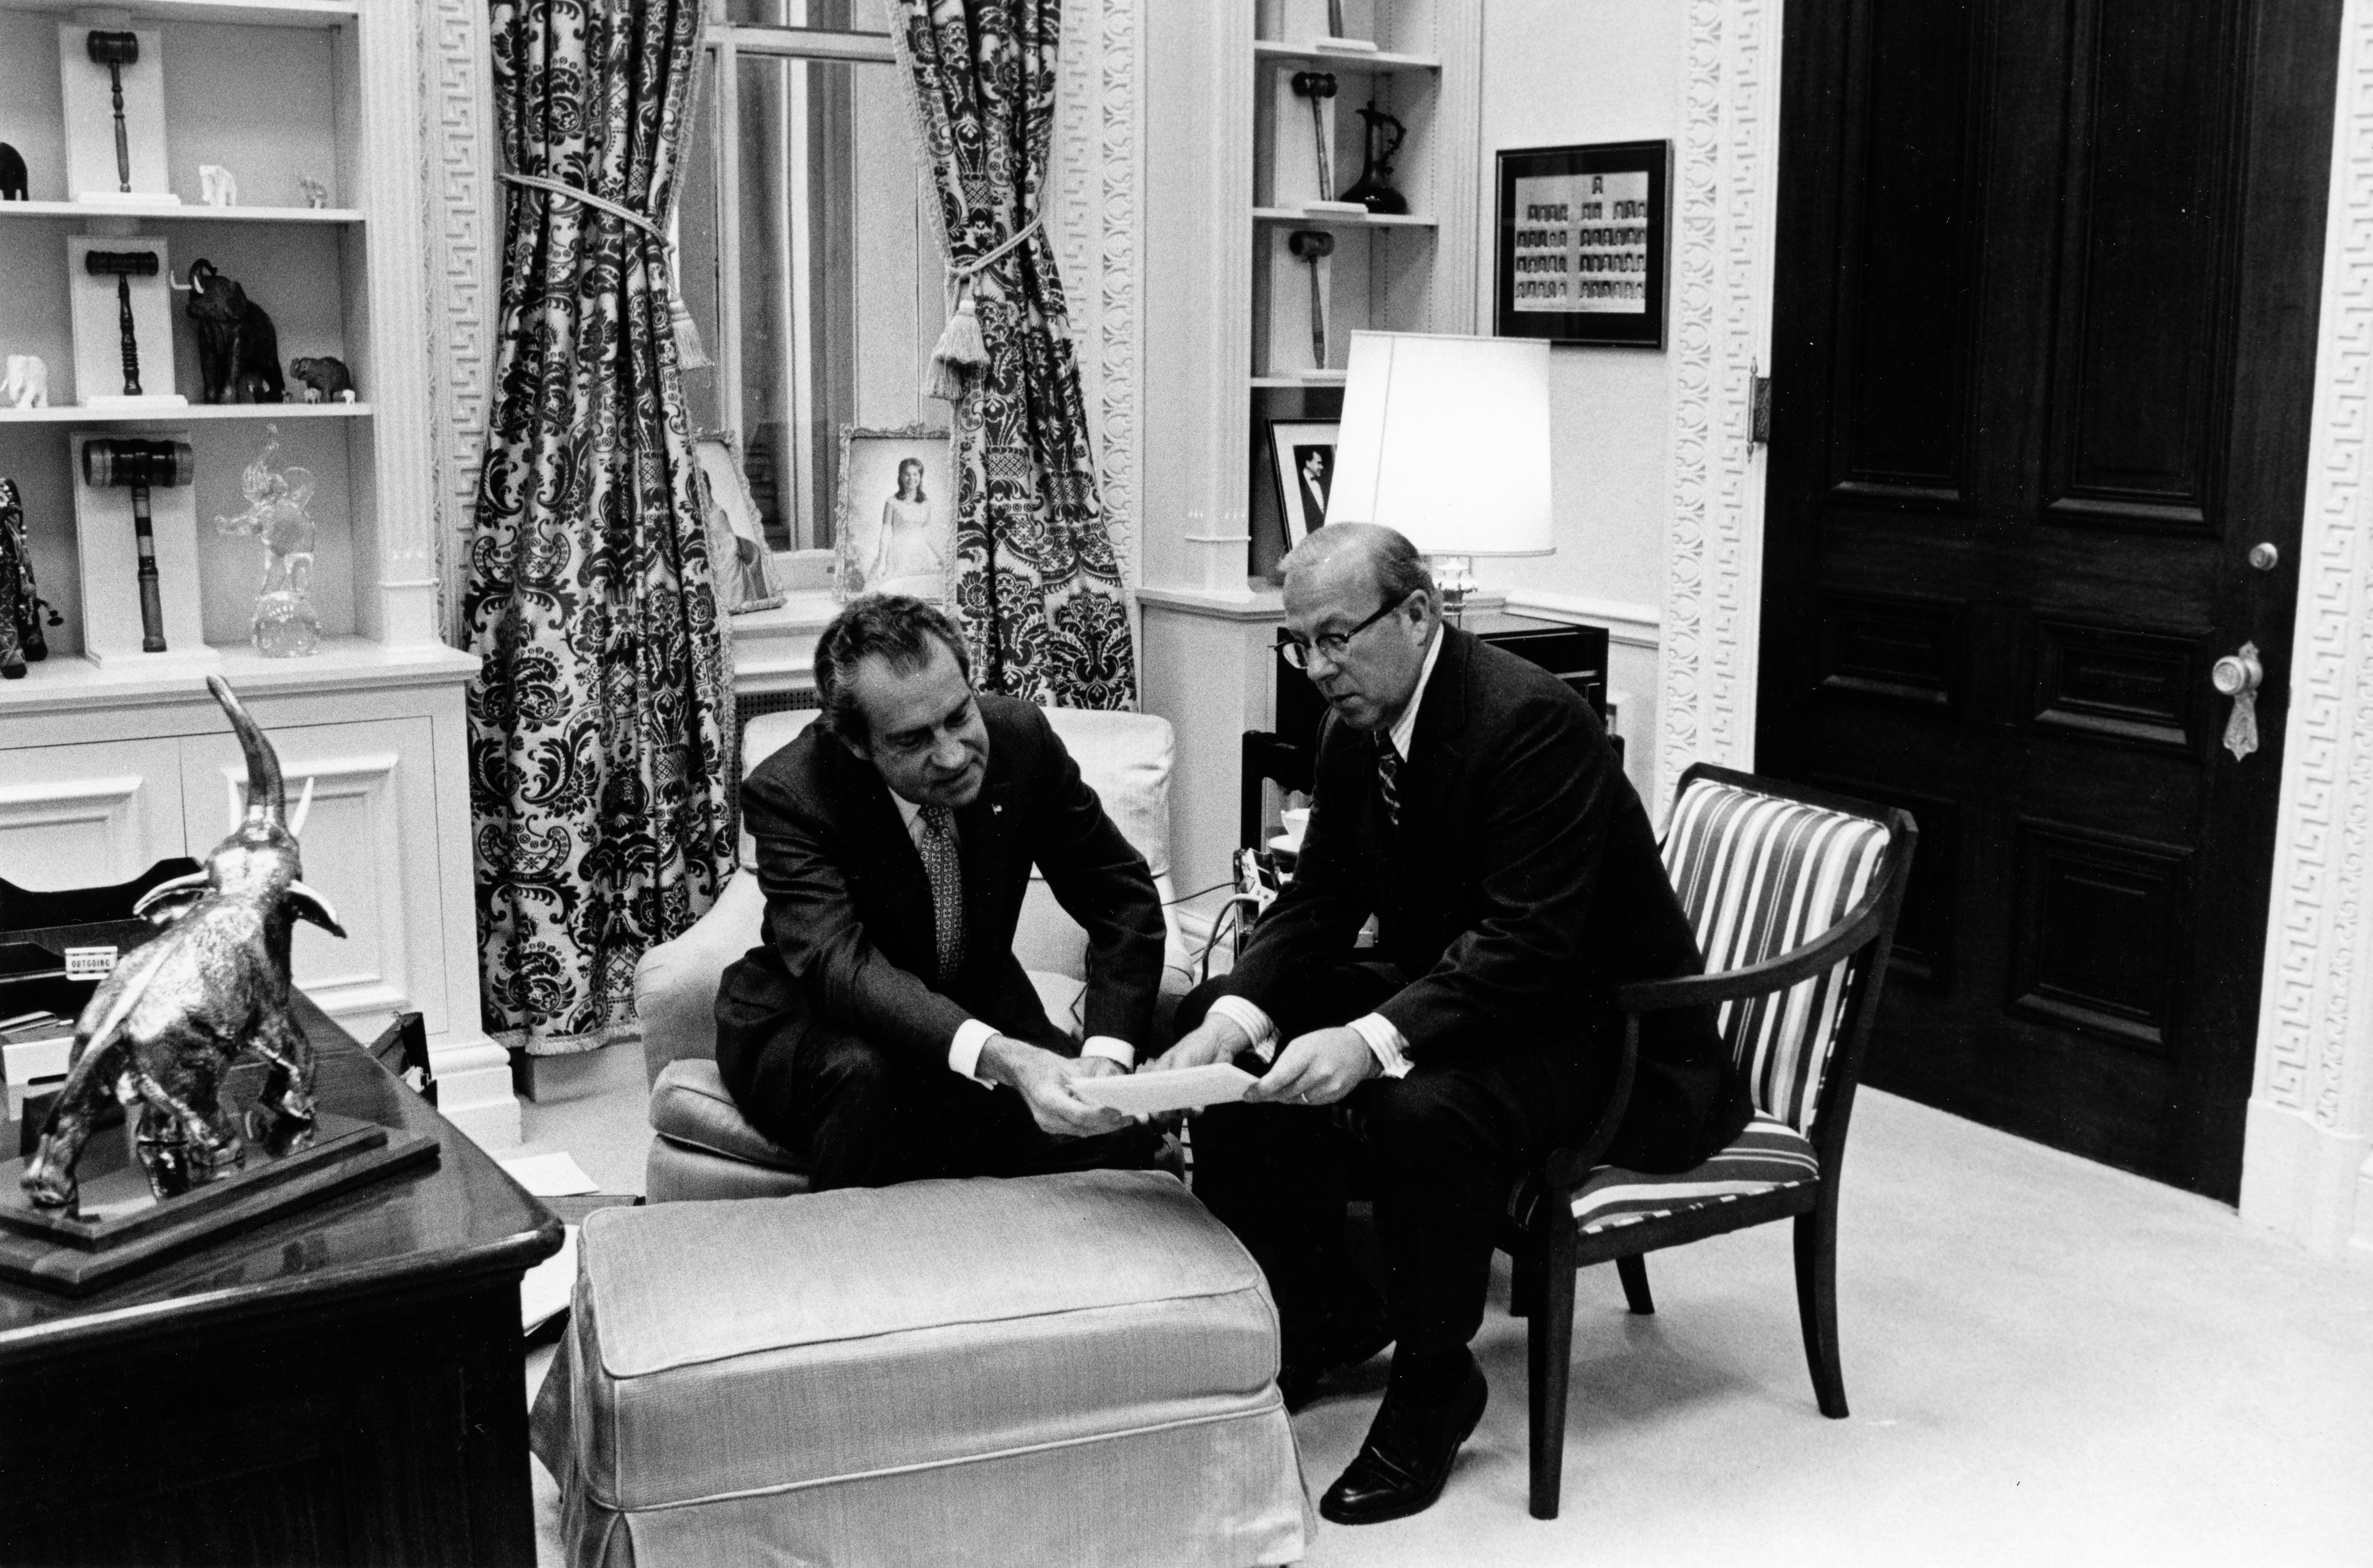 Nixon and School Desegregation: Perspective from George Shultz